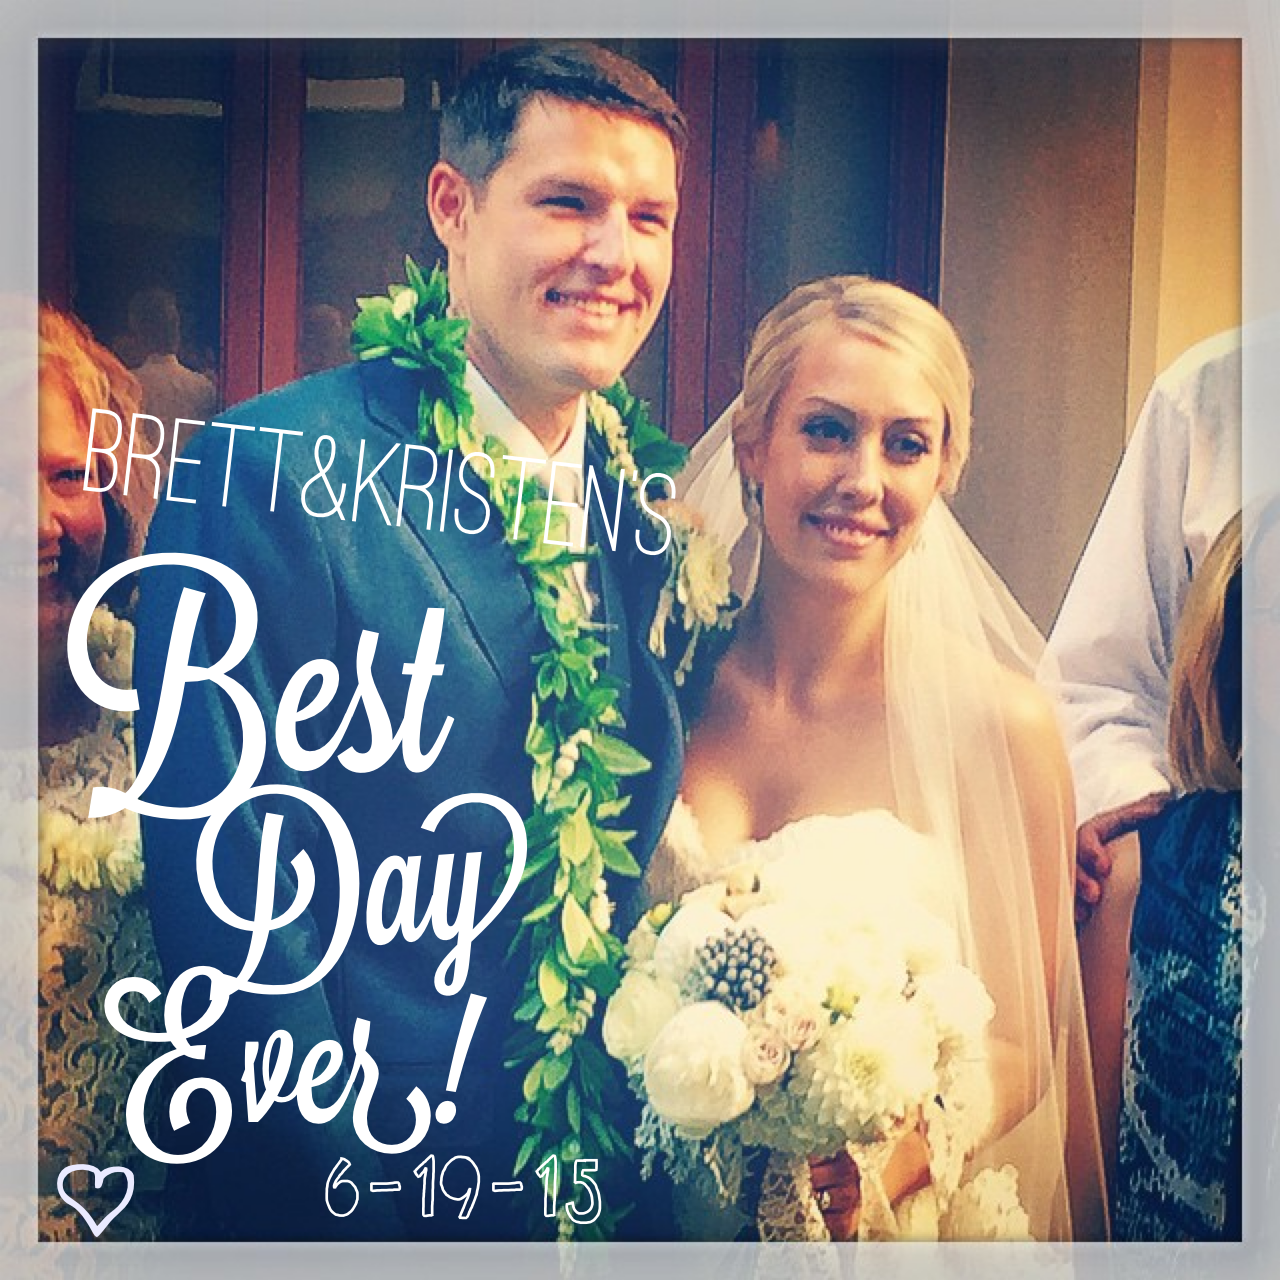 kristen-brett-best-day-ever-hawaii